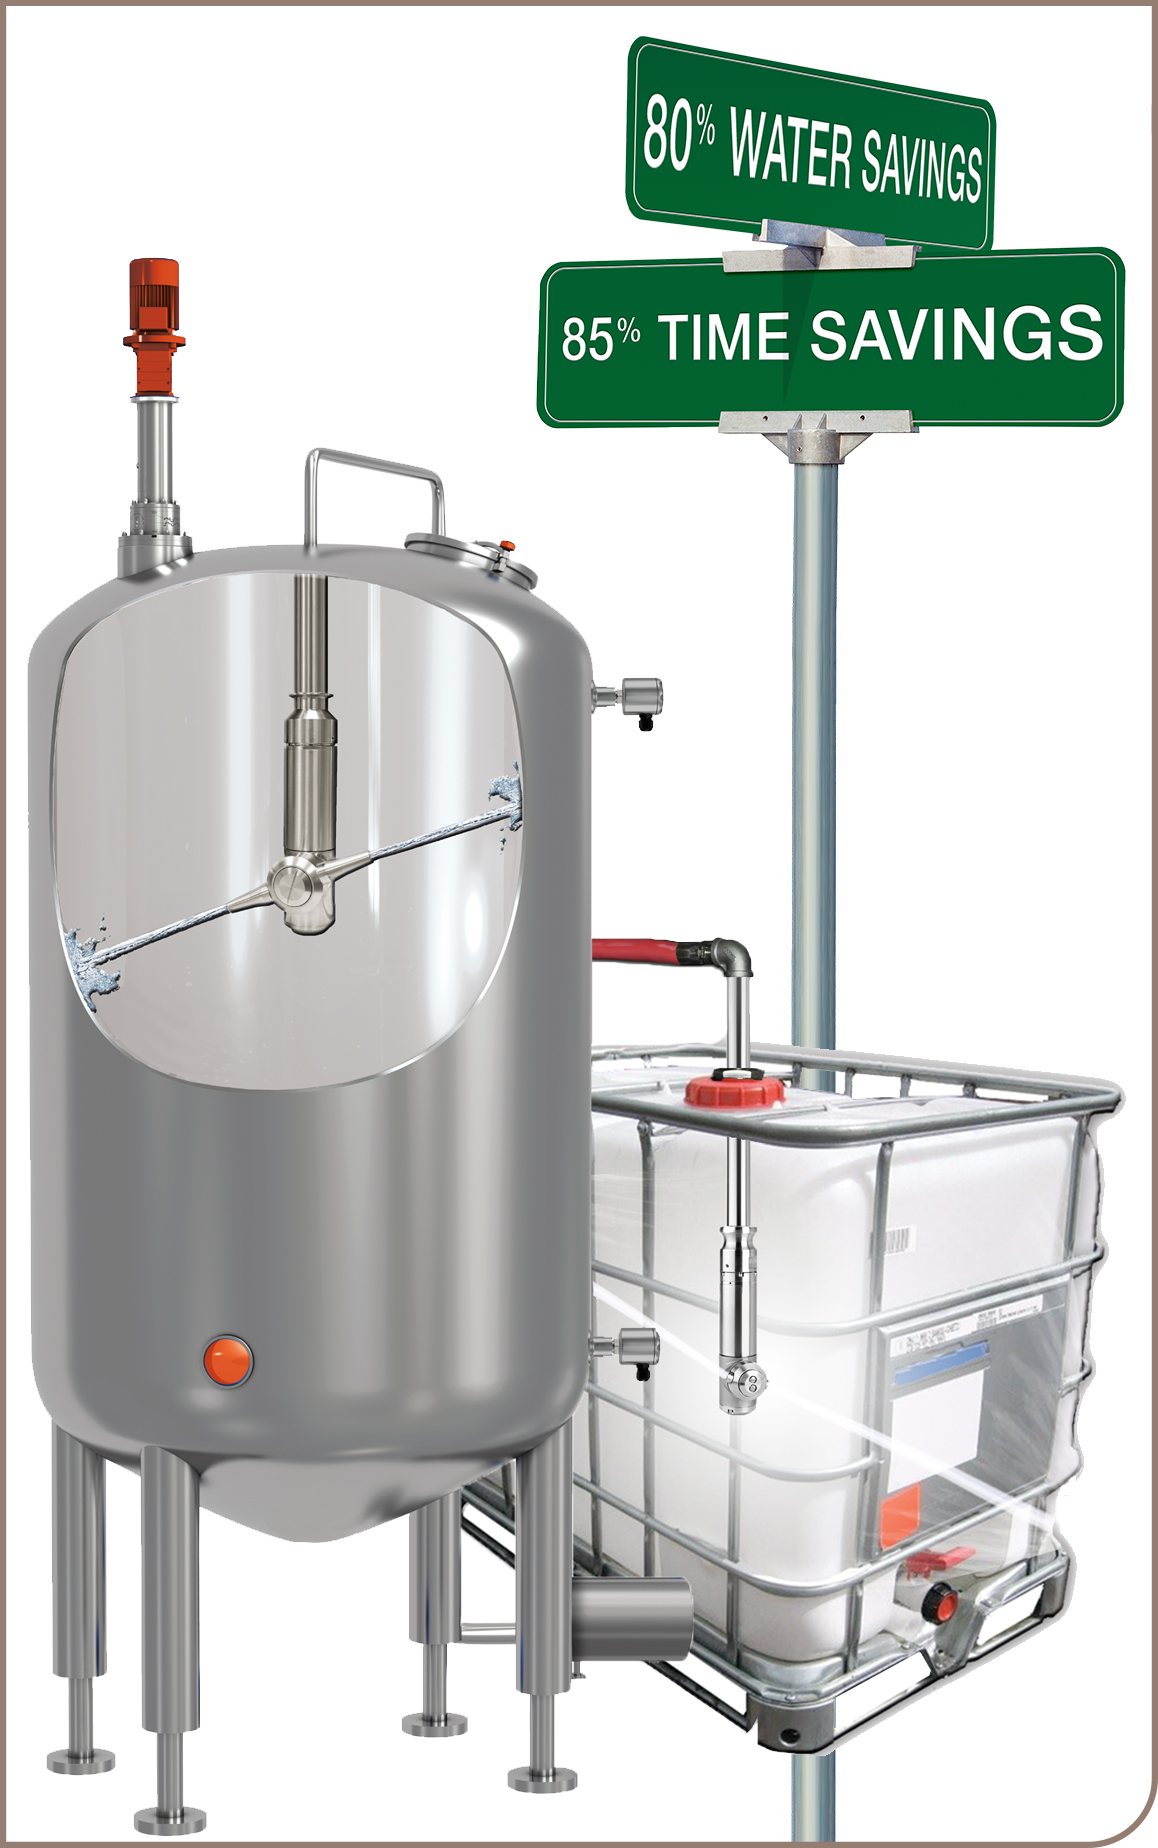 Manual Tank Cleaning Gamajet Cleaning Systems Blog